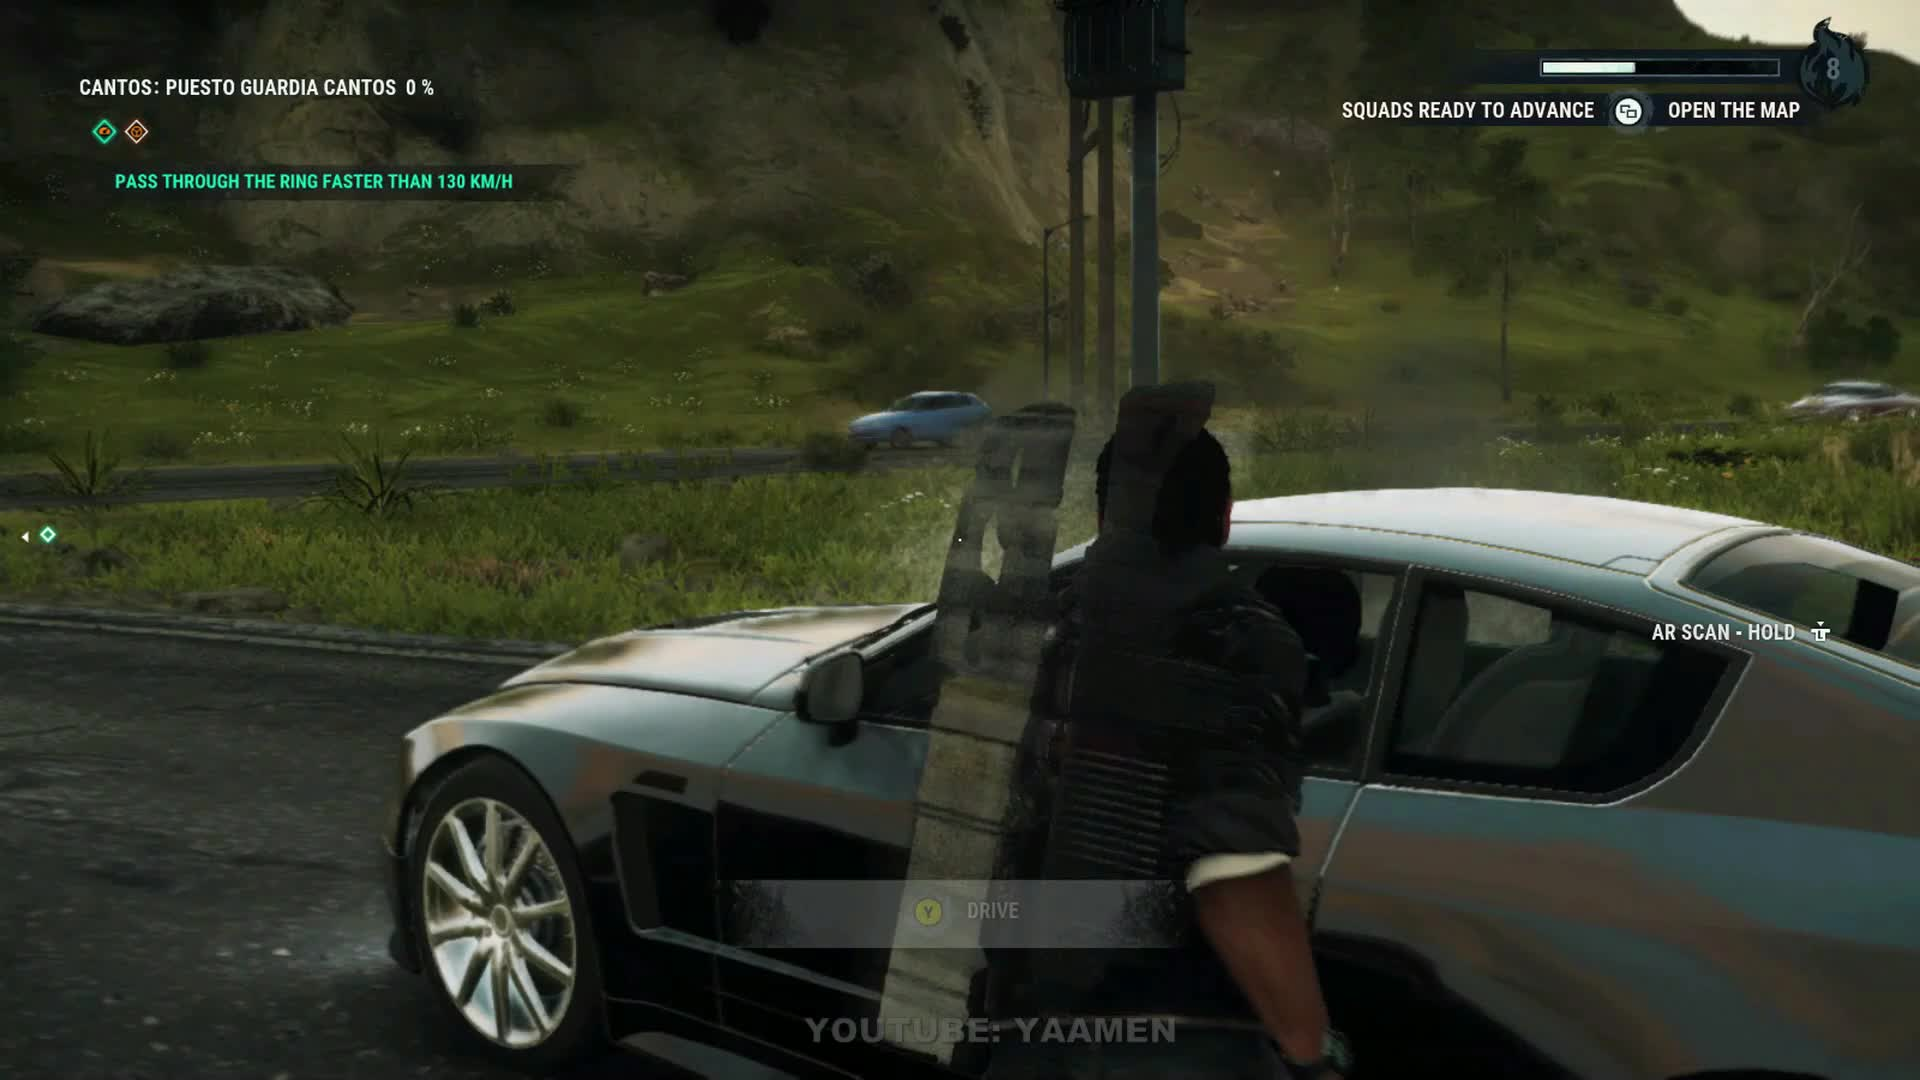 BUG, JUST CAUSE 4, MOTORCYCLE, PHYSICS, SPIN, SQUARE ENIX, JUST CAUSE 4 - TAKING A BIKE FOR A SPIN GIFs